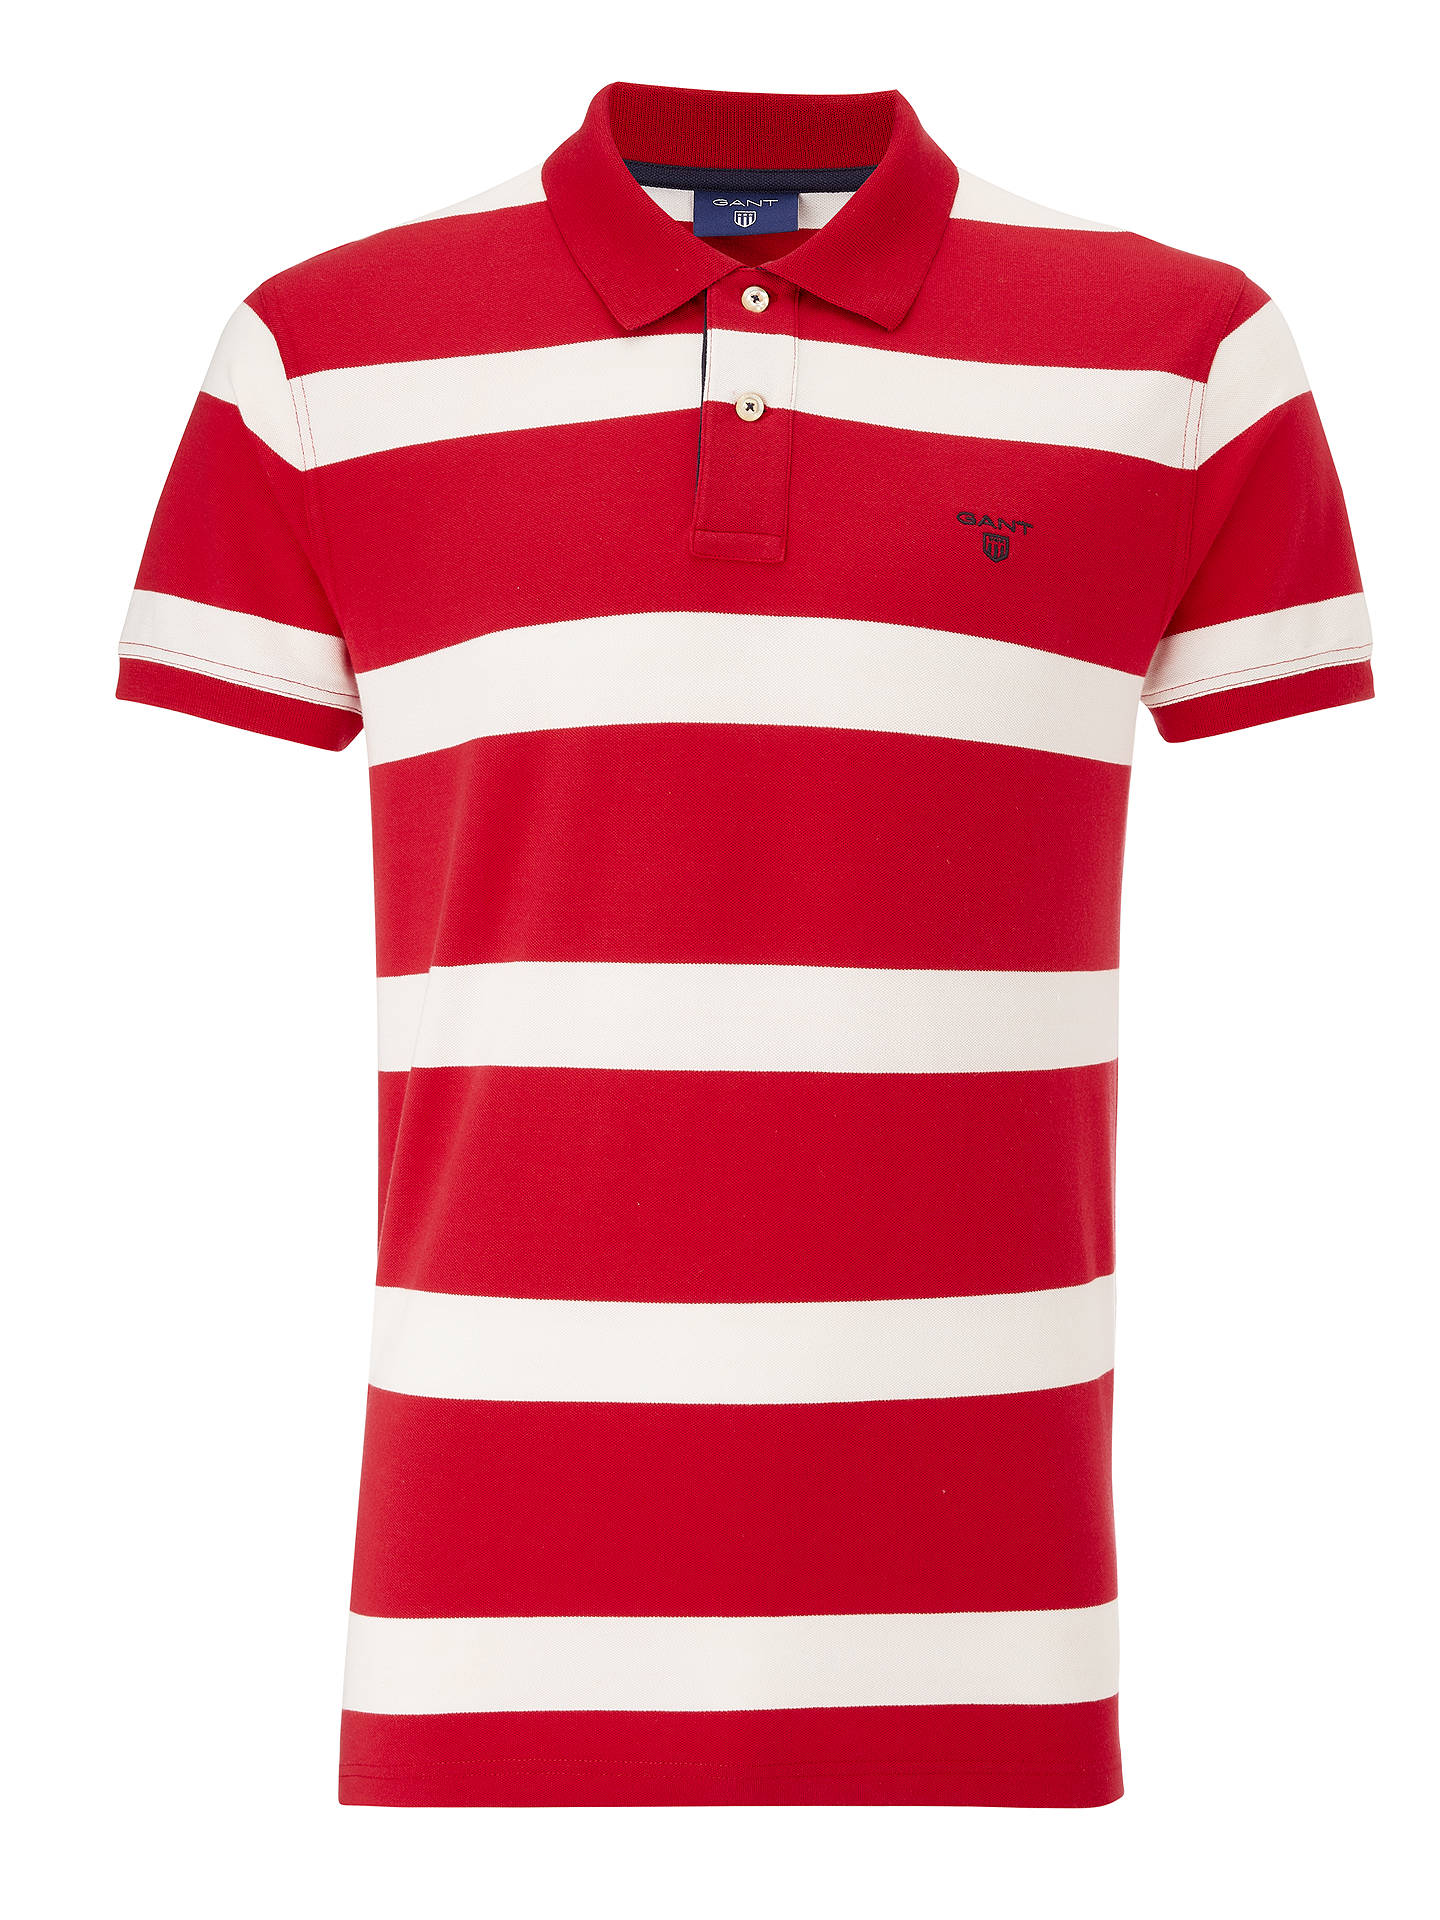 b9d9d6191b4 Buy GANT Contrast Collar Stripe Rugger Polo Shirt, Red, XL Online at  johnlewis.